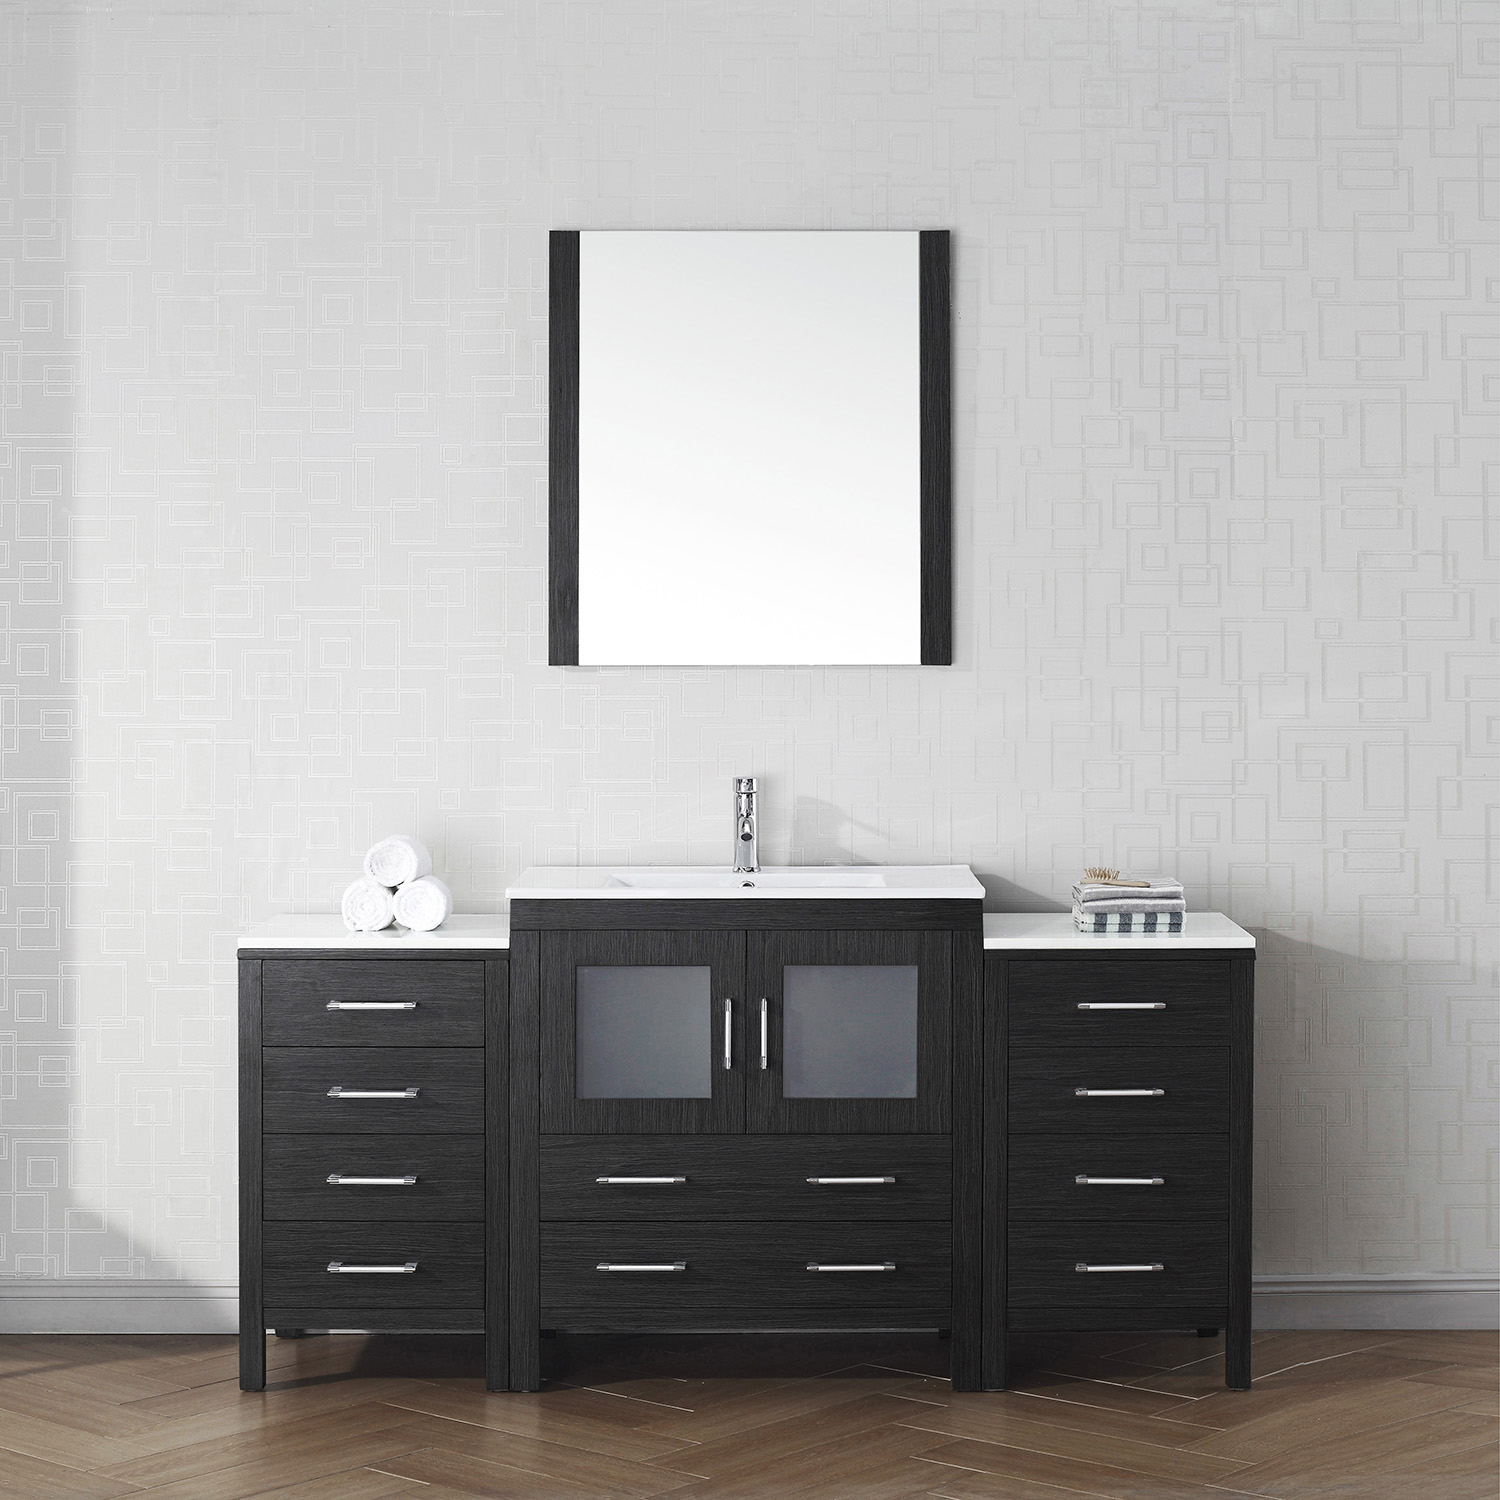 "68"" Single Bath Vanity in Zebra Gray with Slim White Ceramic Top and Square Sink with Polished Chrome Faucet and Mirror"